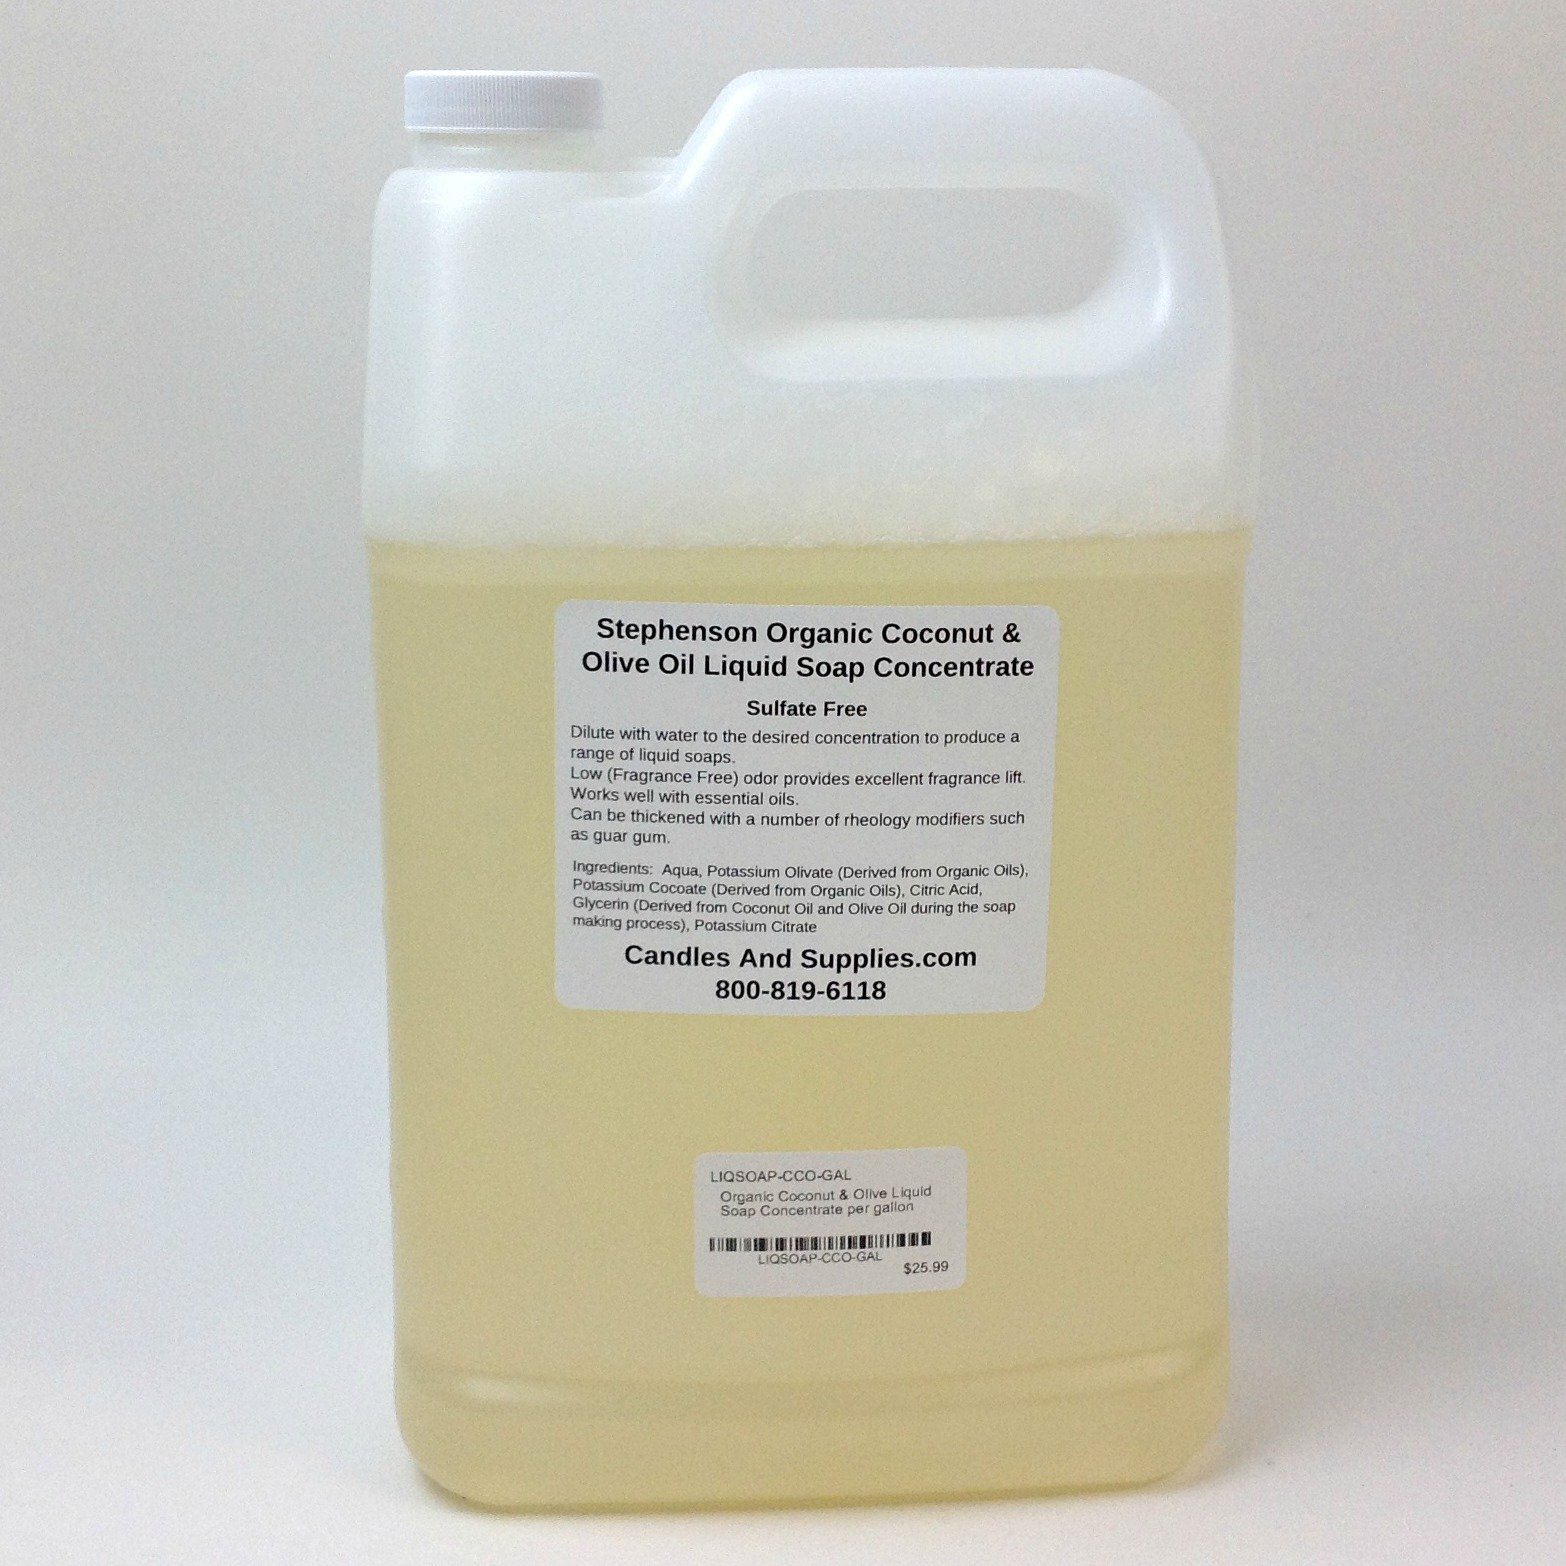 Pack of 1, 1 Gallon Organic Coconut & Olive Liquid Soap Concentrate, Sulfate Free for Soap Making